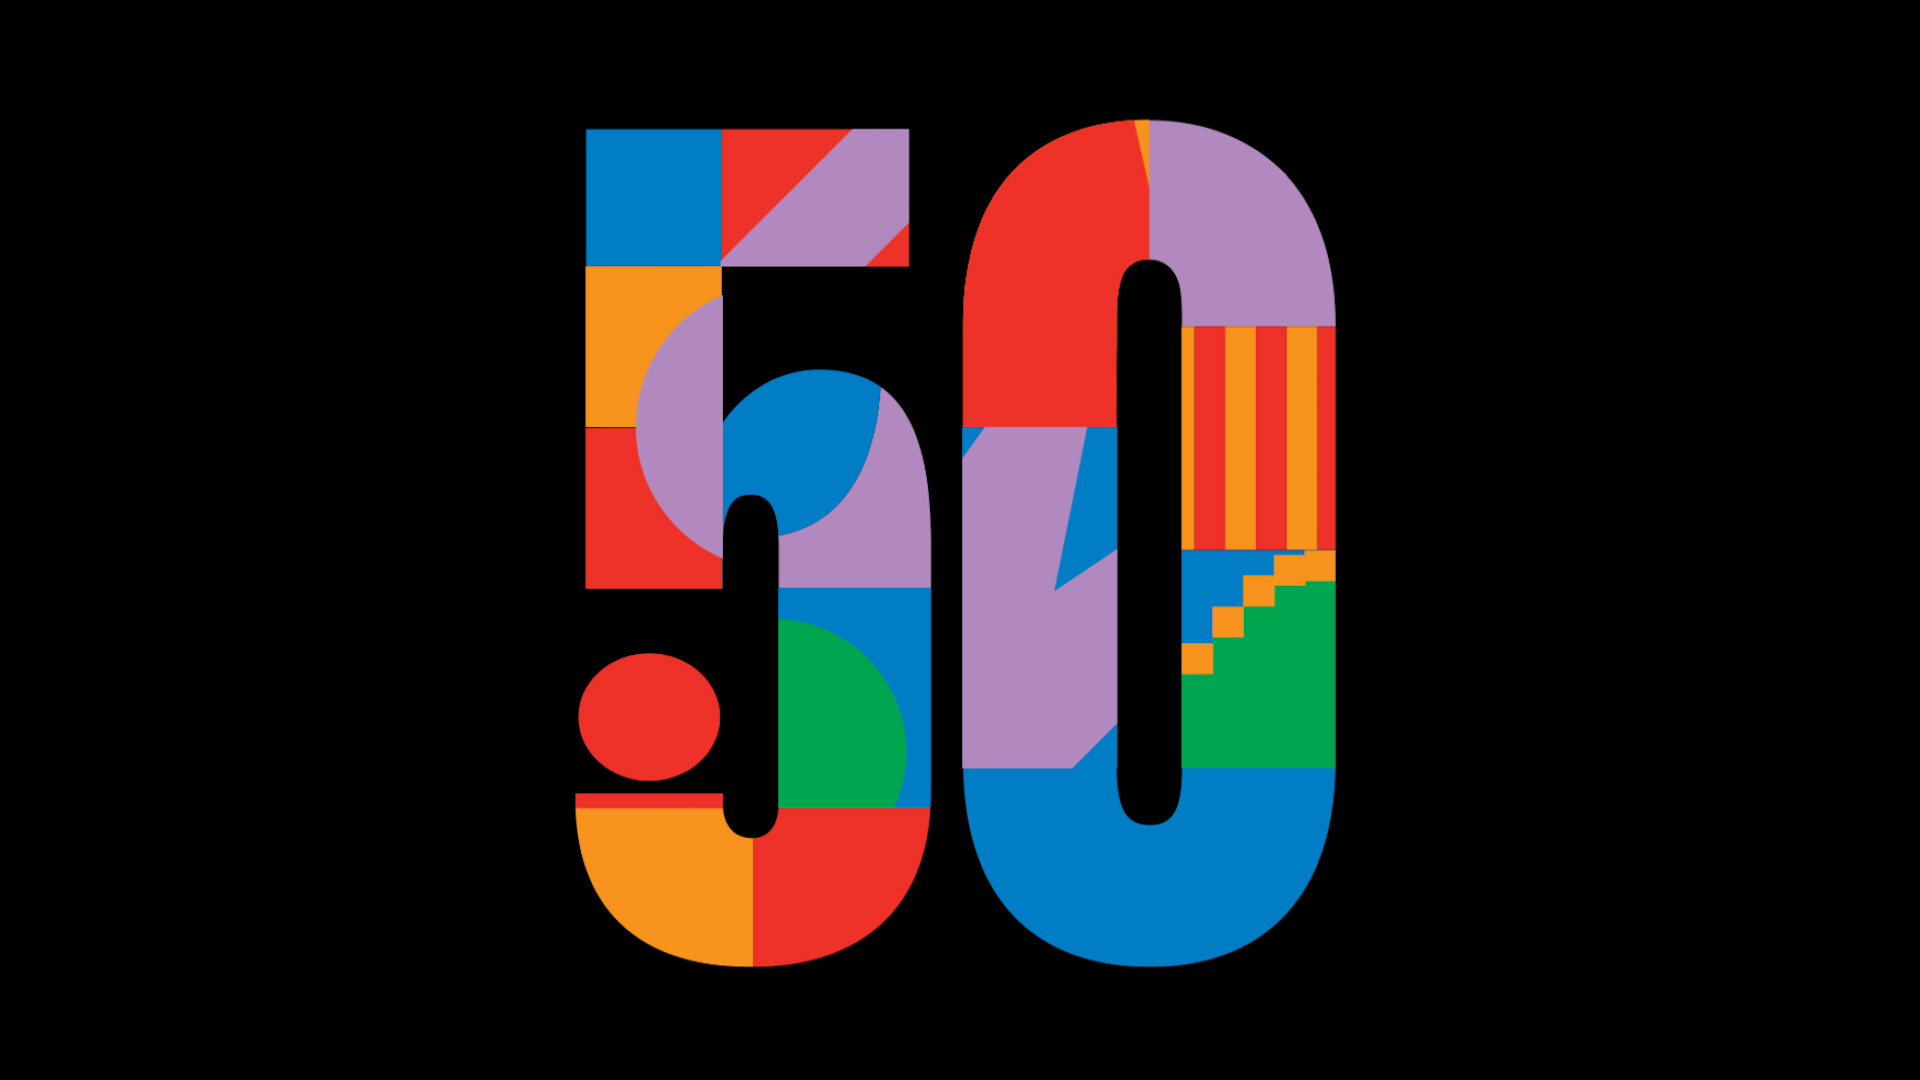 These are the bloomberg 50 bloomberg for Miroir 50 x 30